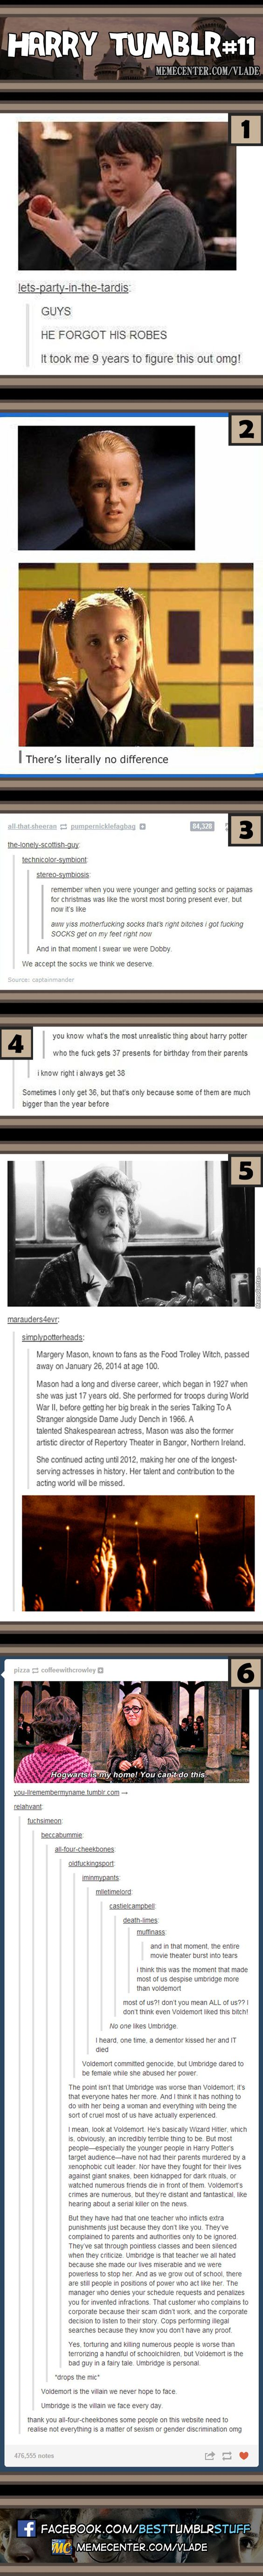 Had to repin just for the first one, but the food trolly witch is quite something. One thing, though... If she was 17 in 1927, she would have been born in 1910, so how come she died when she was 100 years old in 2014? Basic maths, guys.